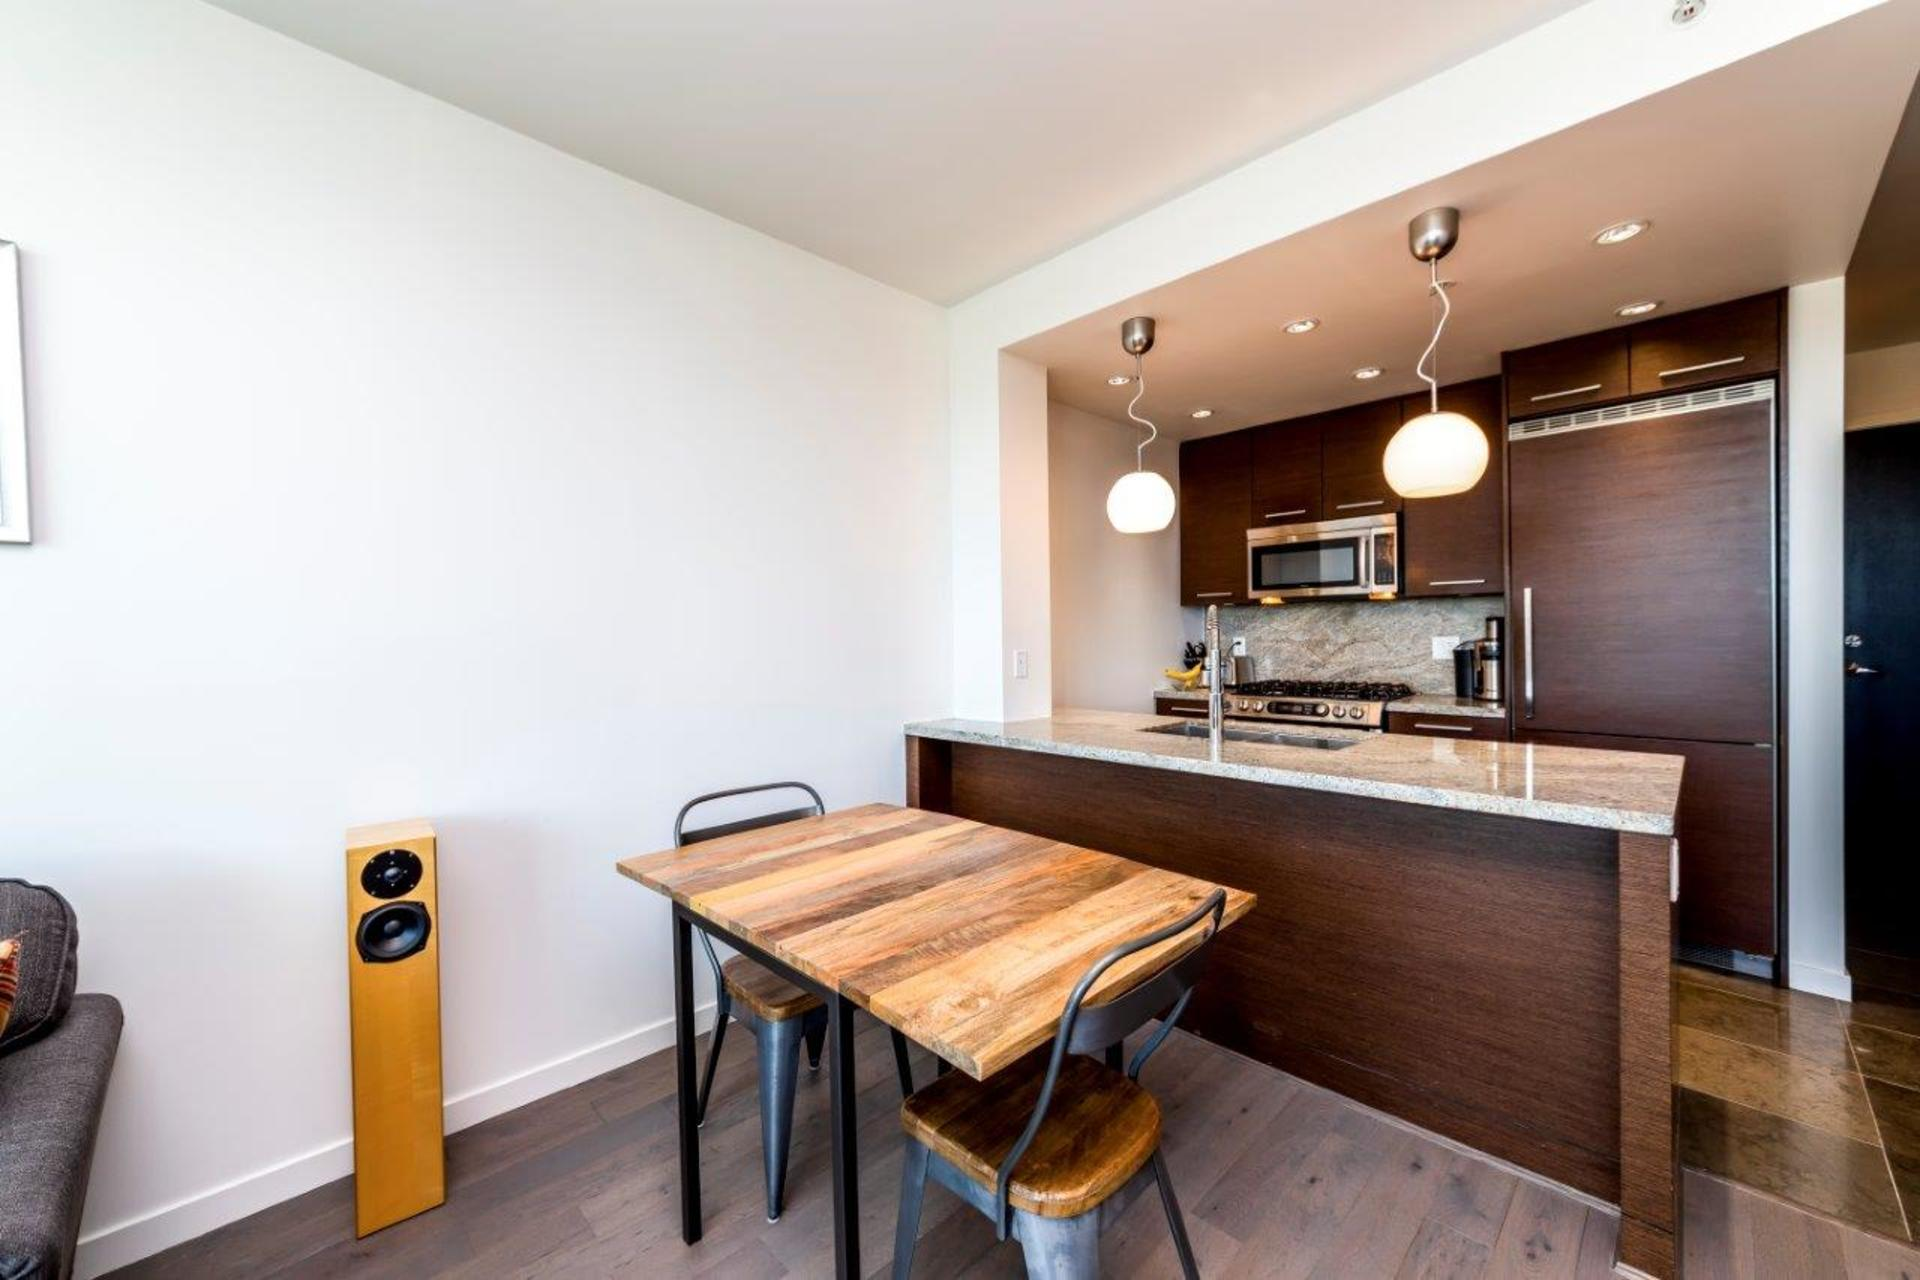 2528maple-33 at 708 - 2528 Maple Street, Kitsilano, Vancouver West